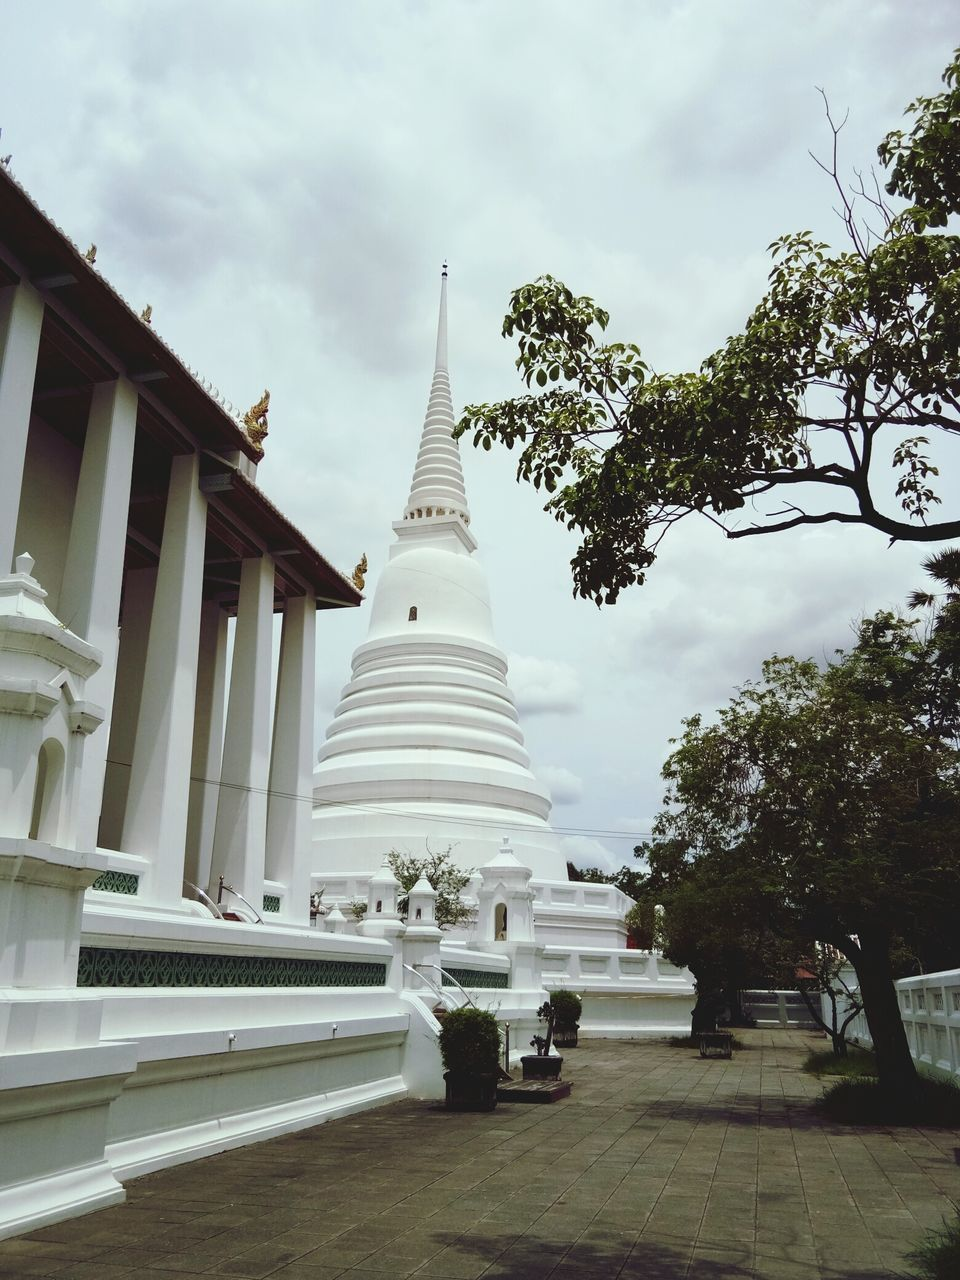 architecture, religion, built structure, spirituality, place of worship, tree, building exterior, sky, day, cloud - sky, outdoors, no people, travel destinations, statue, sculpture, nature